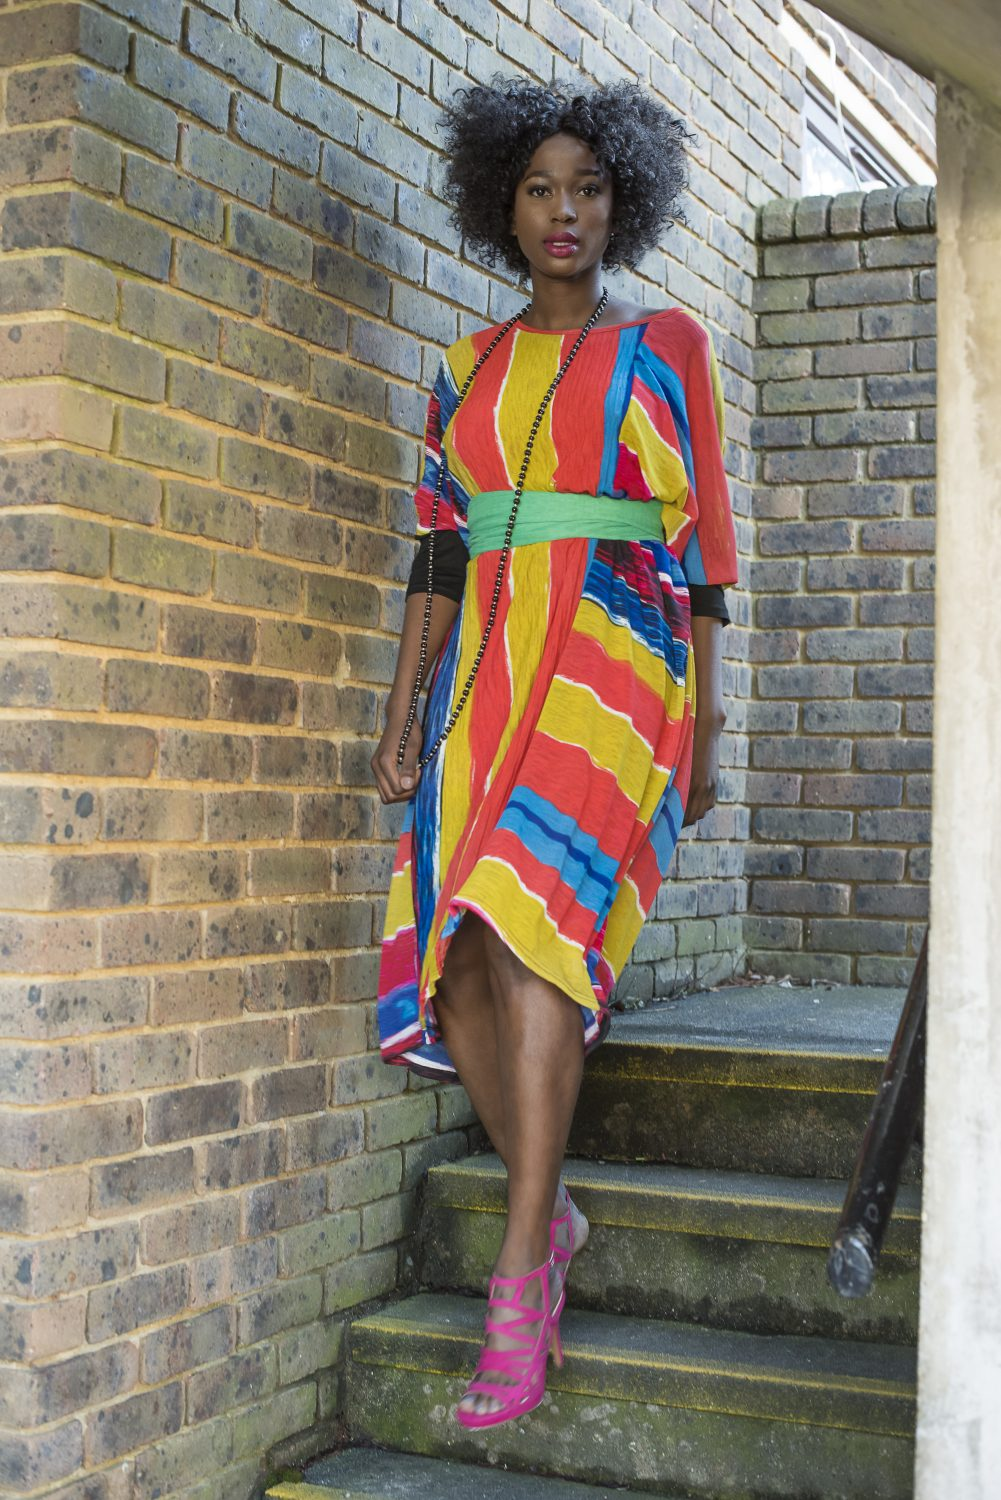 Dress, £65, Who's Wearing What Boutique whoswearingwhat-boutique.co.uk; necklace, £32, Antoine & Lili antoineetlili.com; scarf worn as belt, £22.50, cage sandals, £49.95, Manuka Shoes manukashoes.com